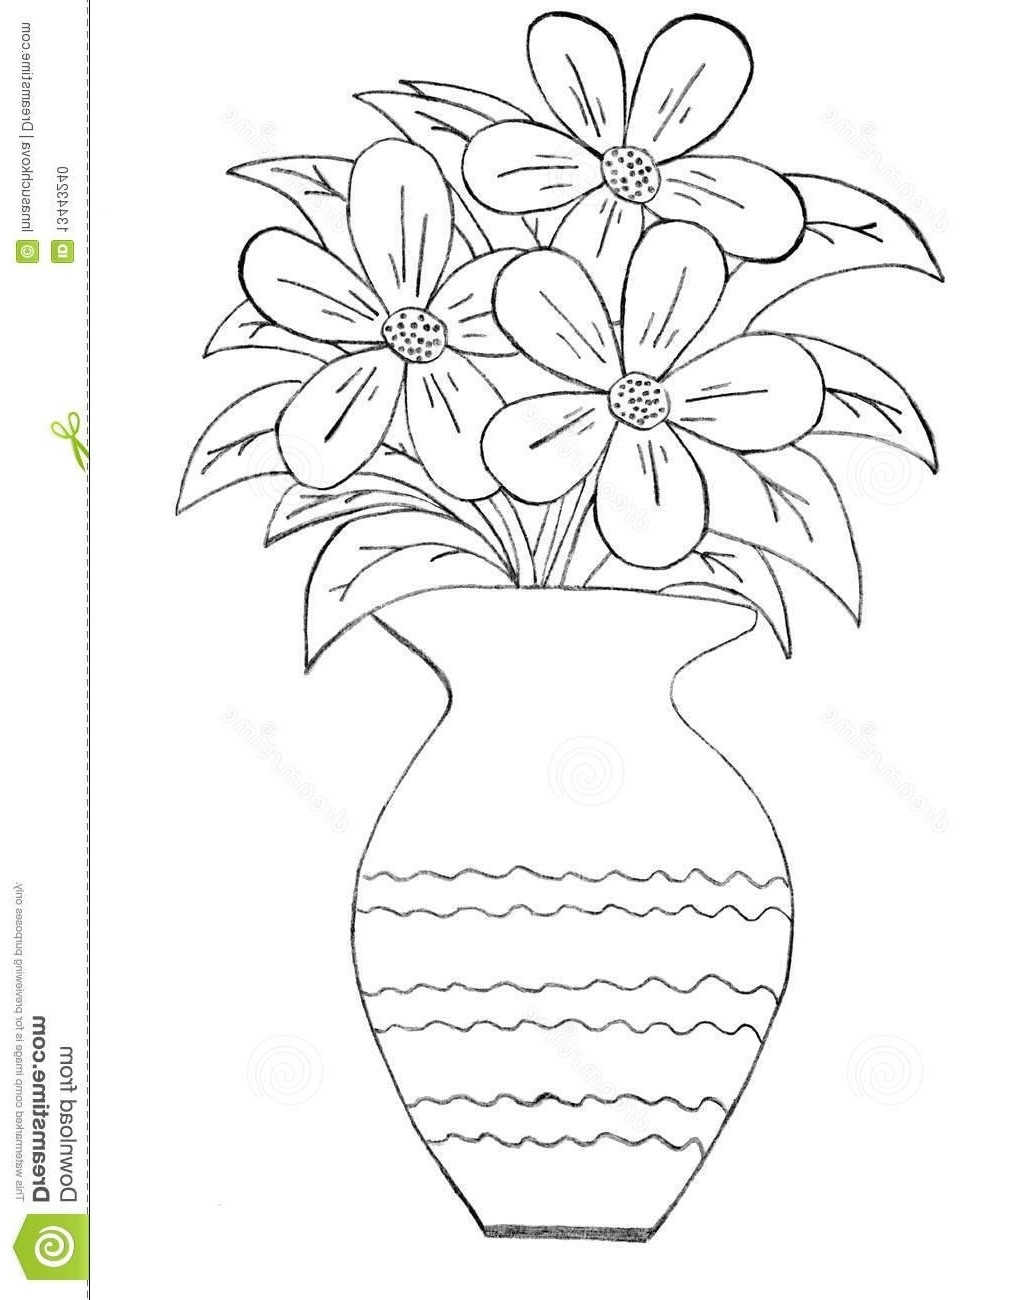 1035x1300 Photos Flower Vase Drawing For Kids Art Gallery Imagesh Vases Draw